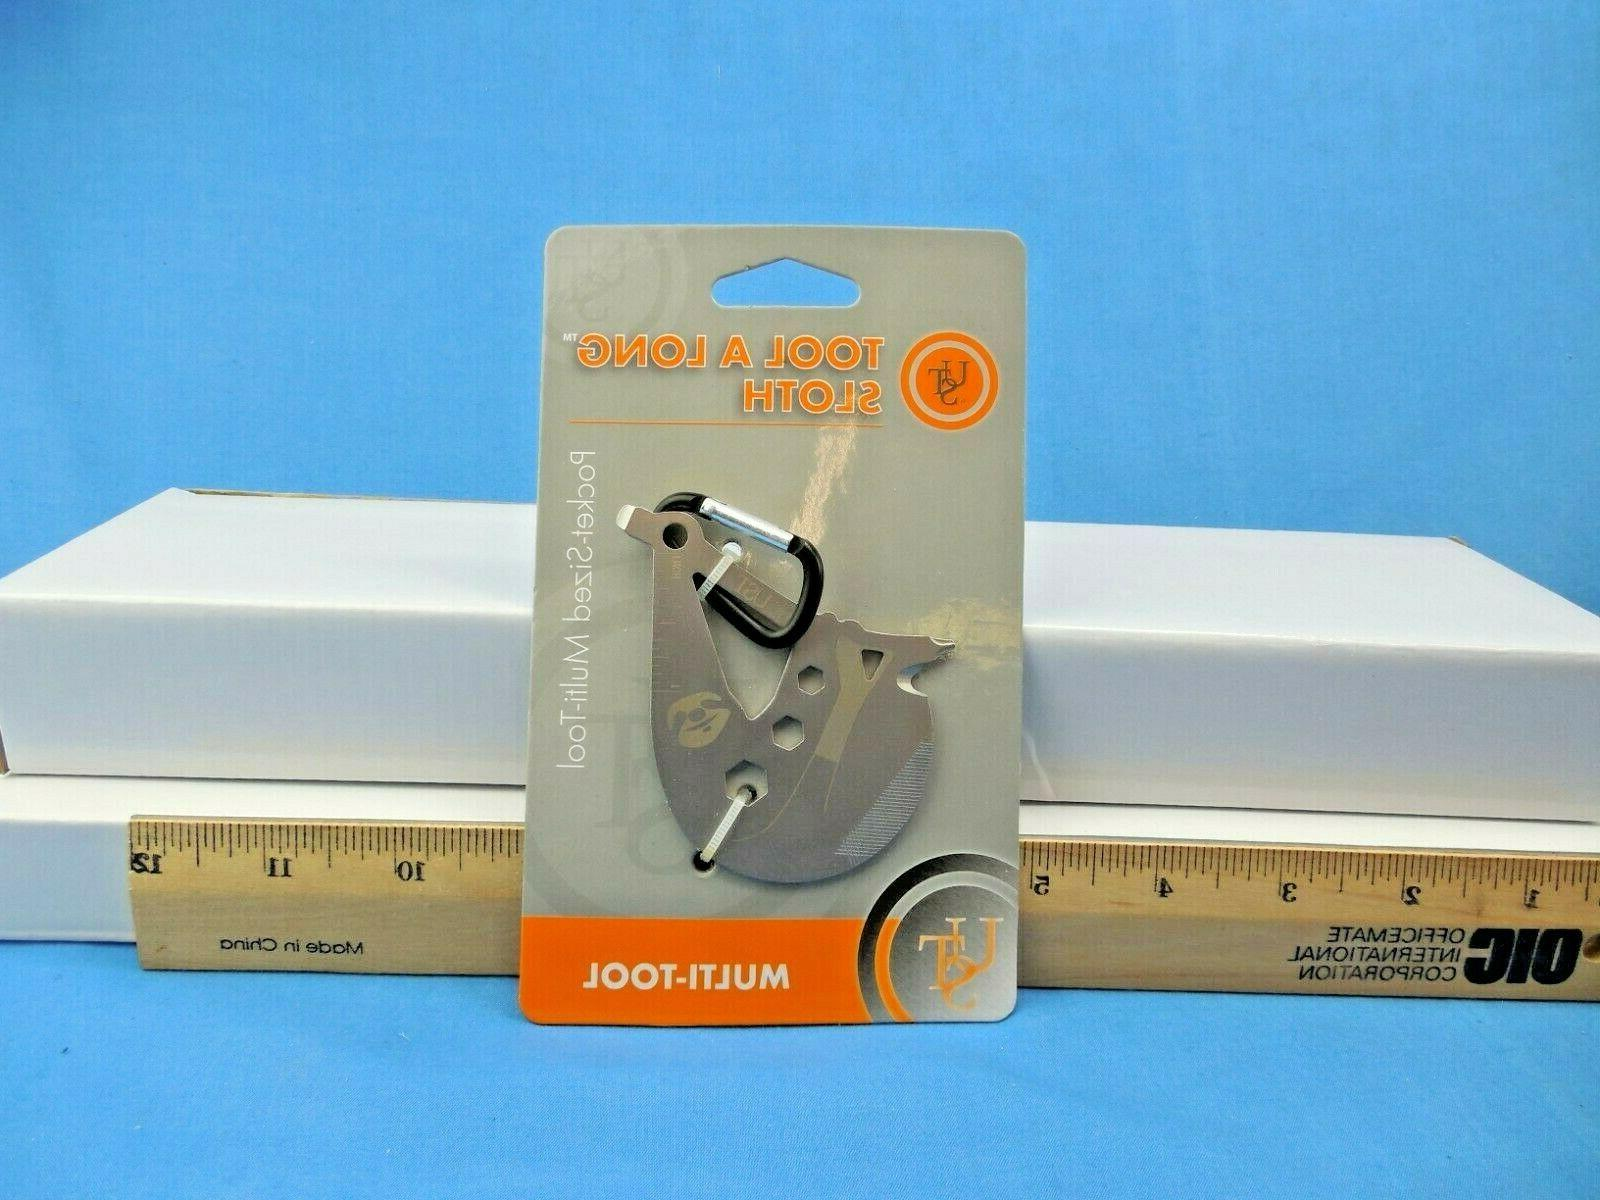 SMALL MULTITOOL - 6 FOR TRAVEL- - NEW